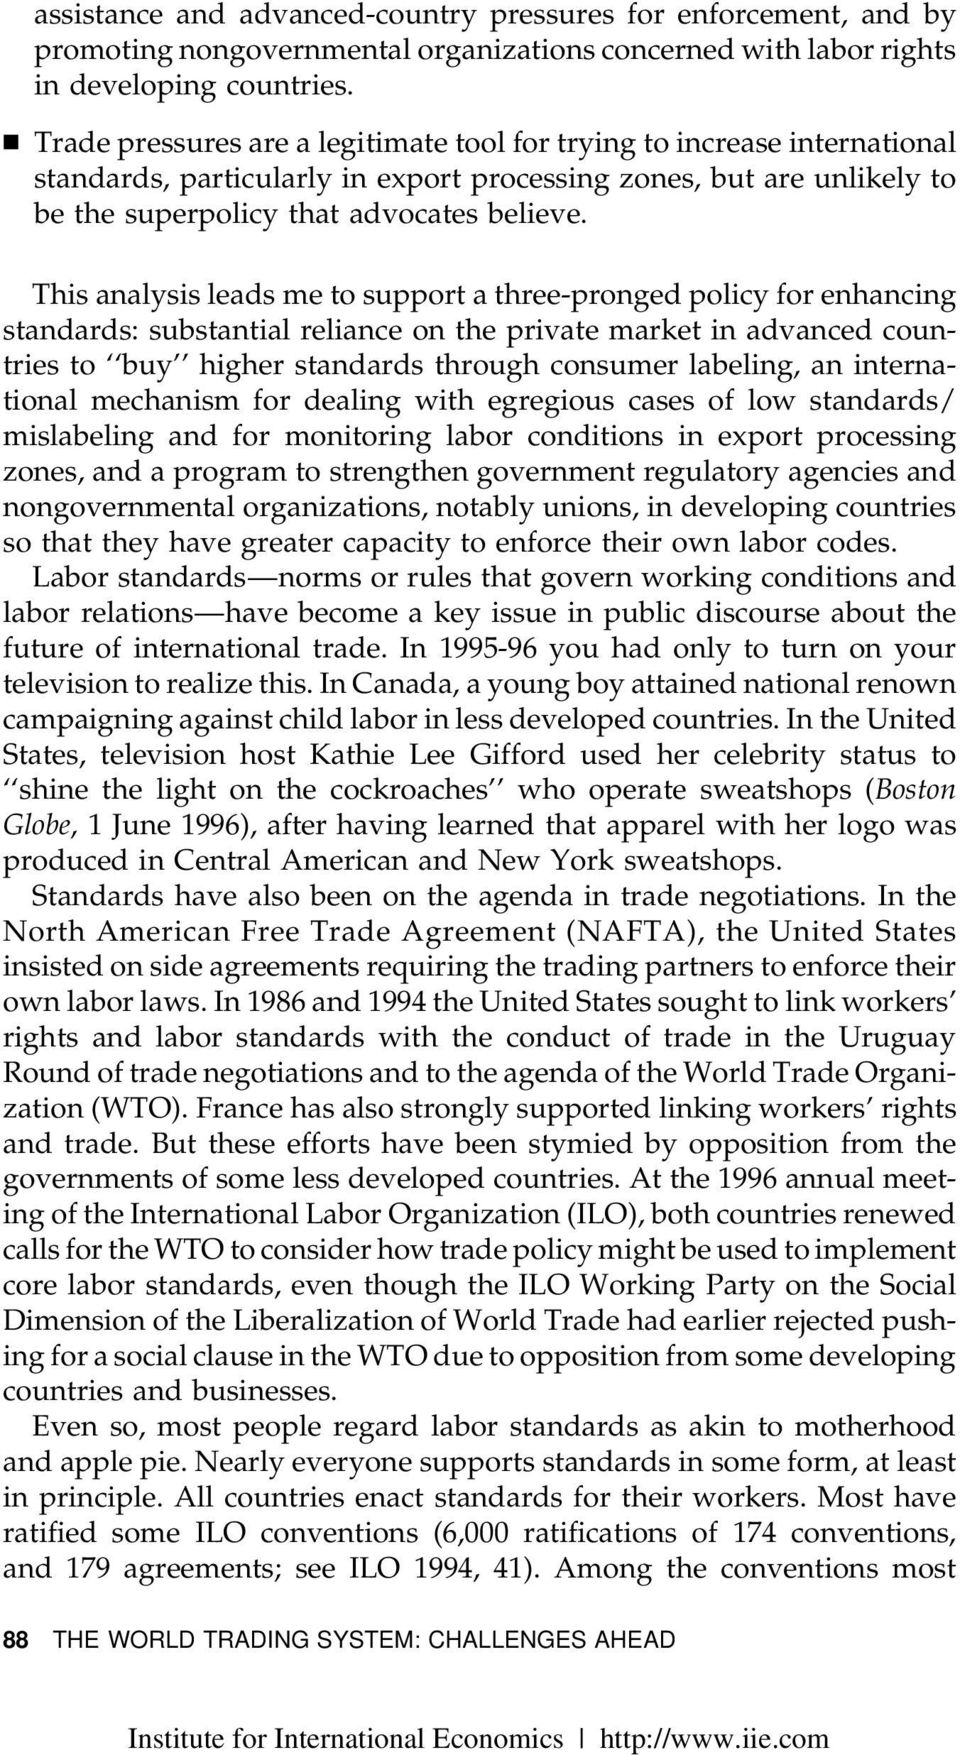 labor standards and wto Institutions, the case for devising wto rules and disciplines to improve core labor standards in low-income countries cannot be convincingly made further, there are no compelling.